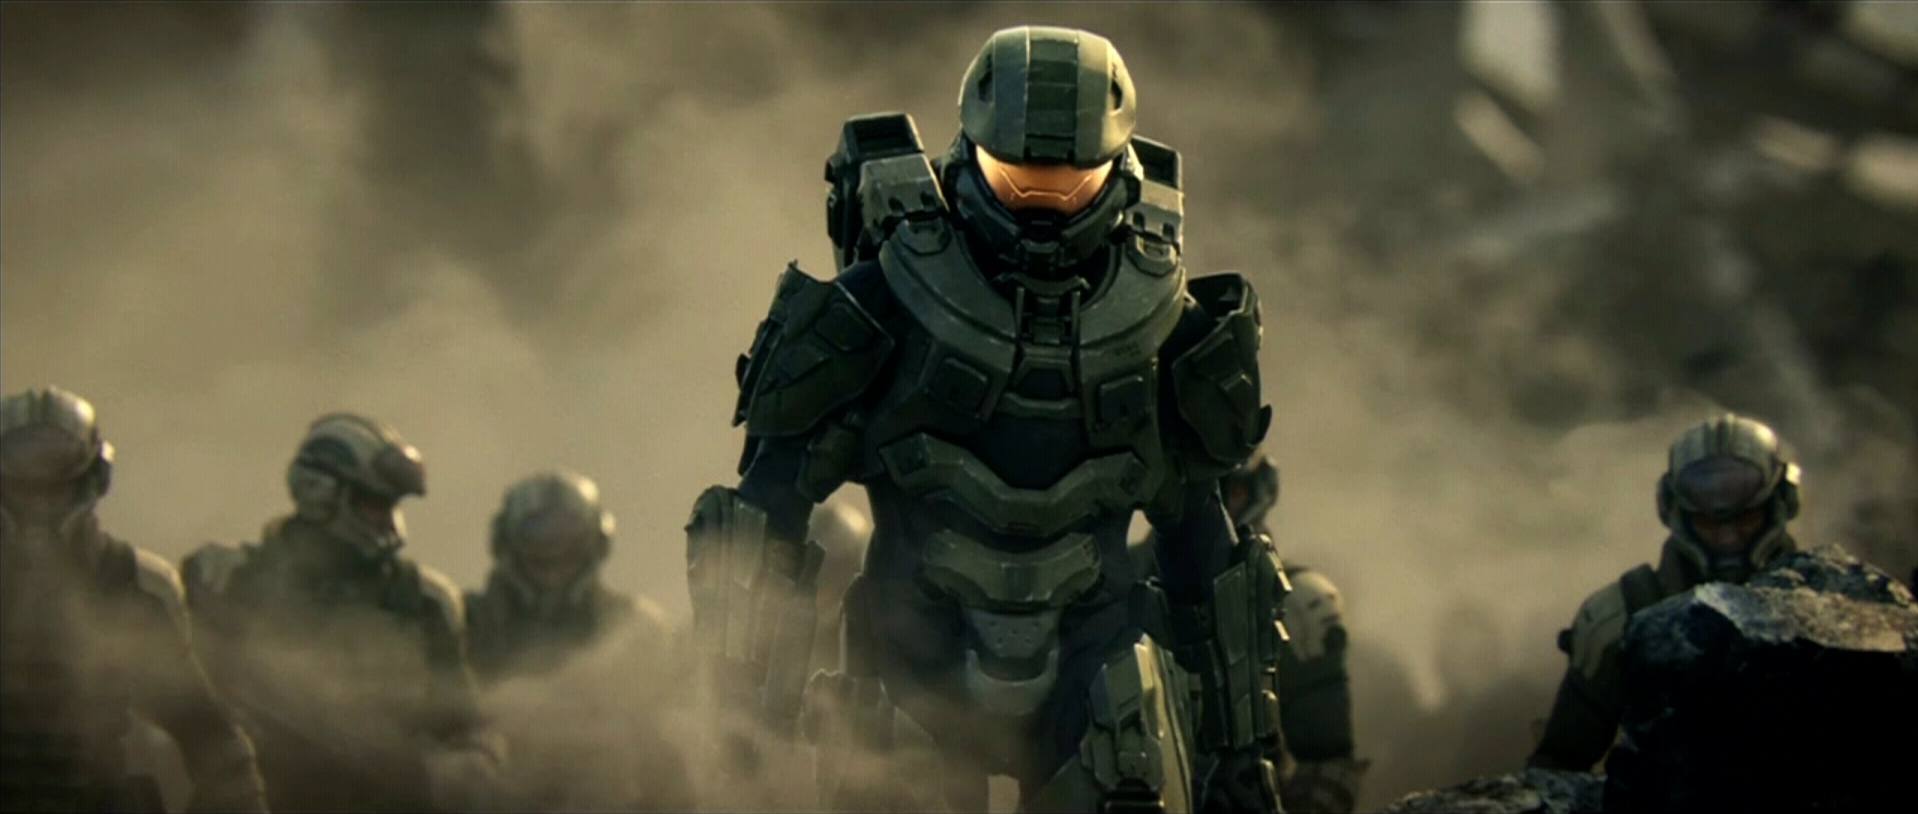 Showtime in negotiations to develop Halo TV series